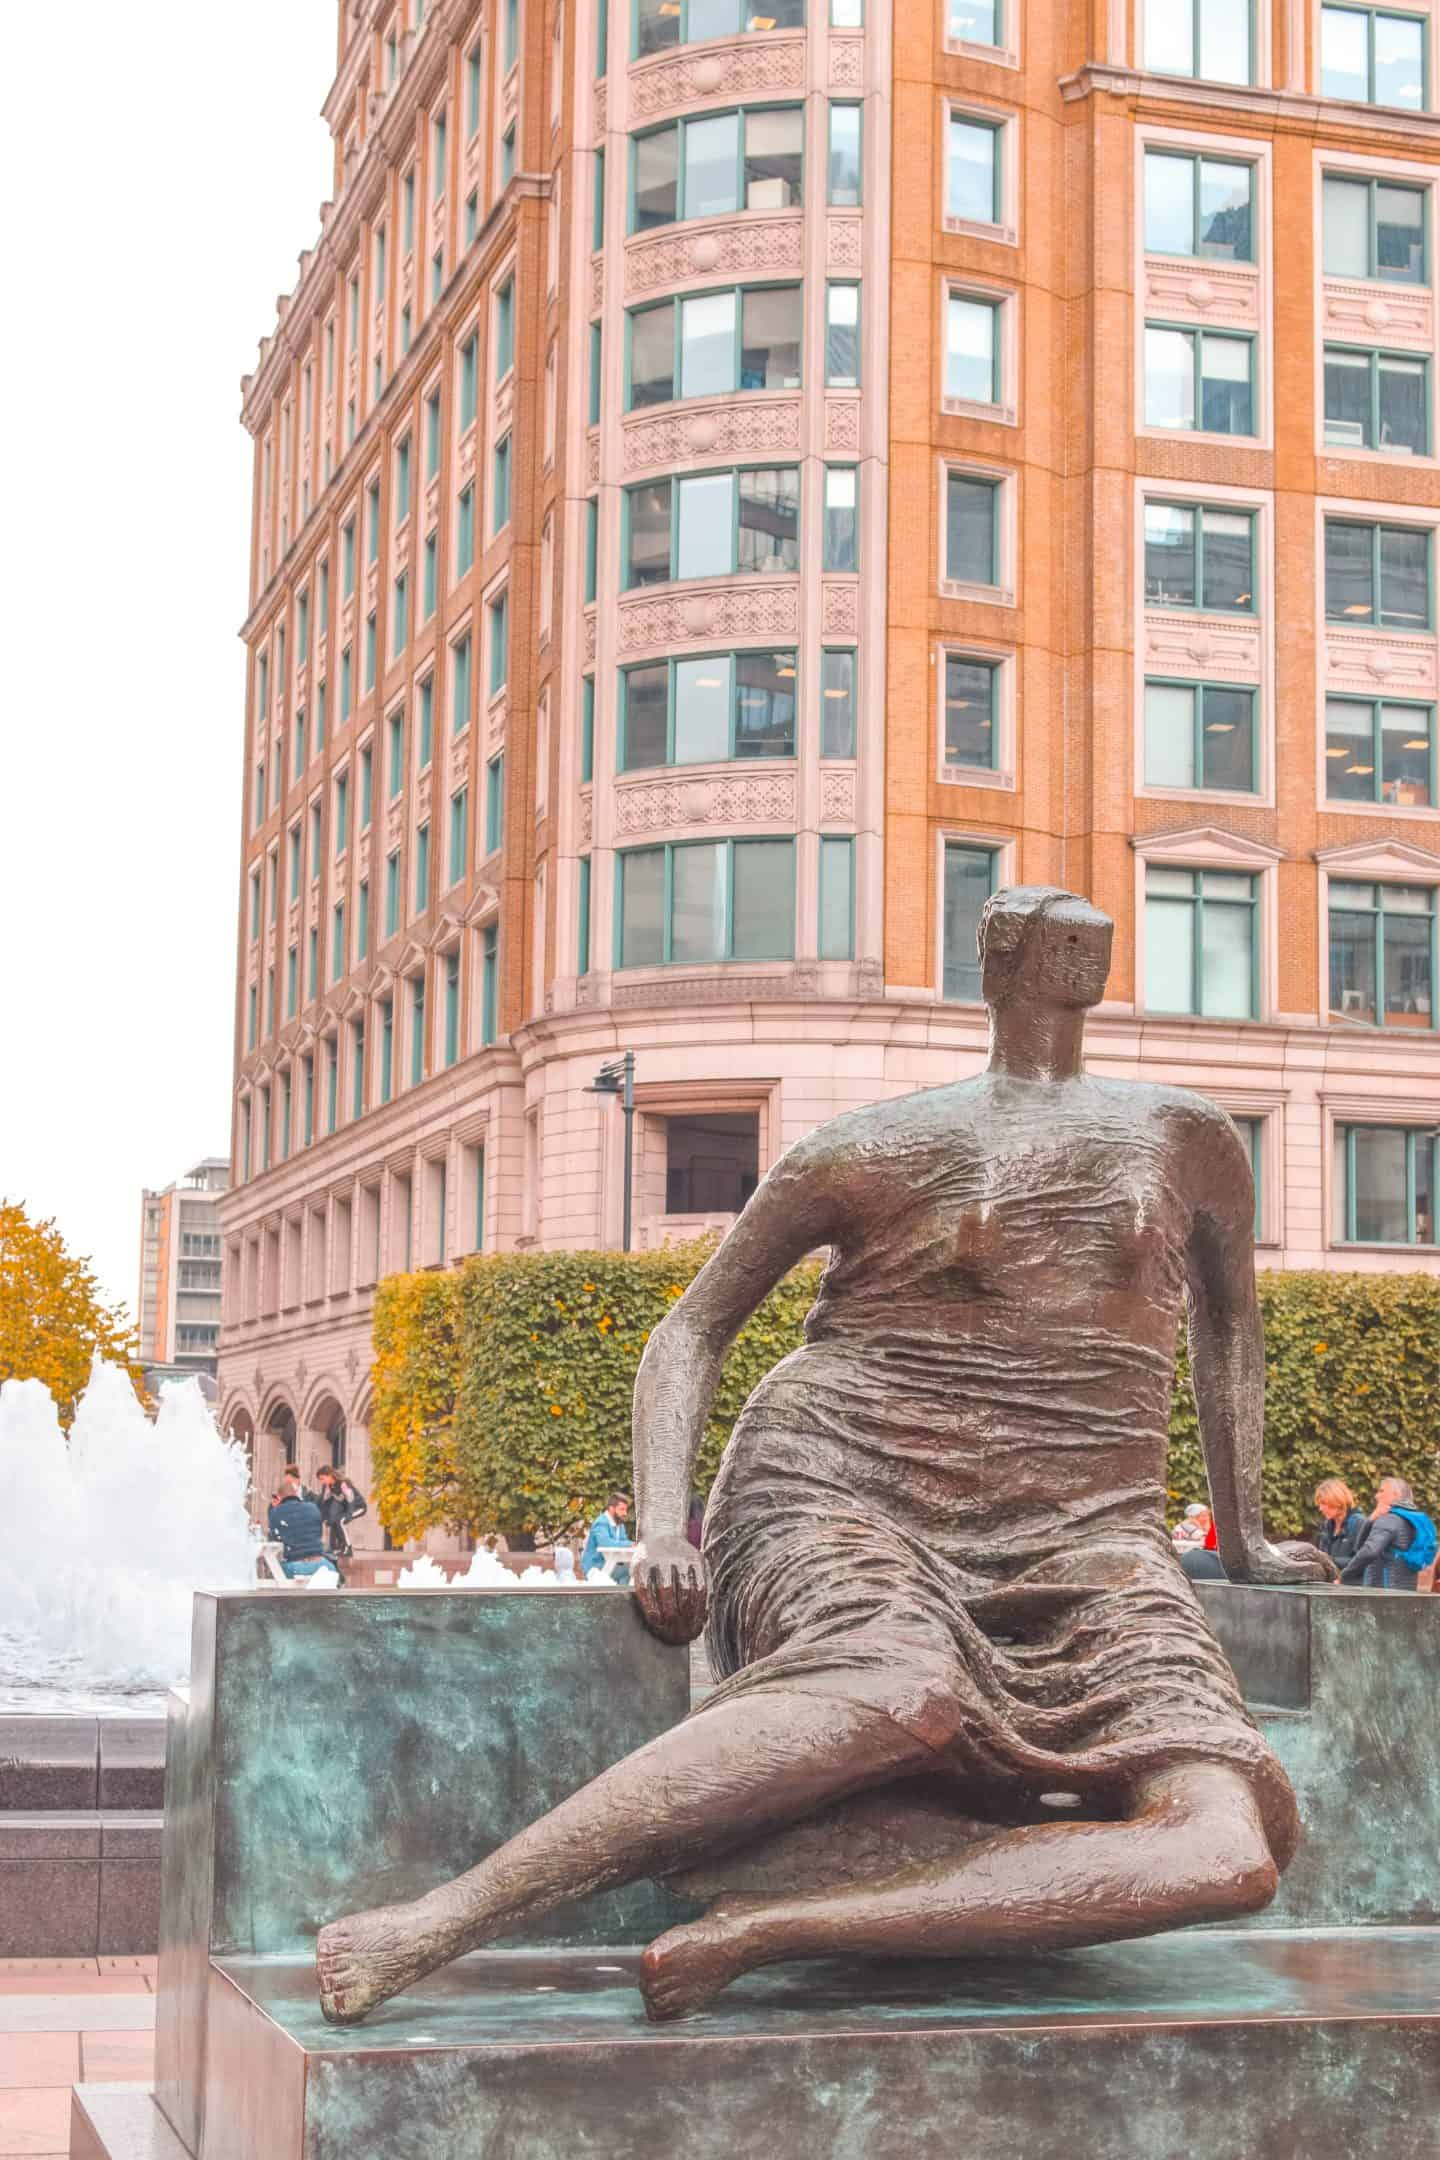 Sculpture Art in Canary Wharf: Places to go